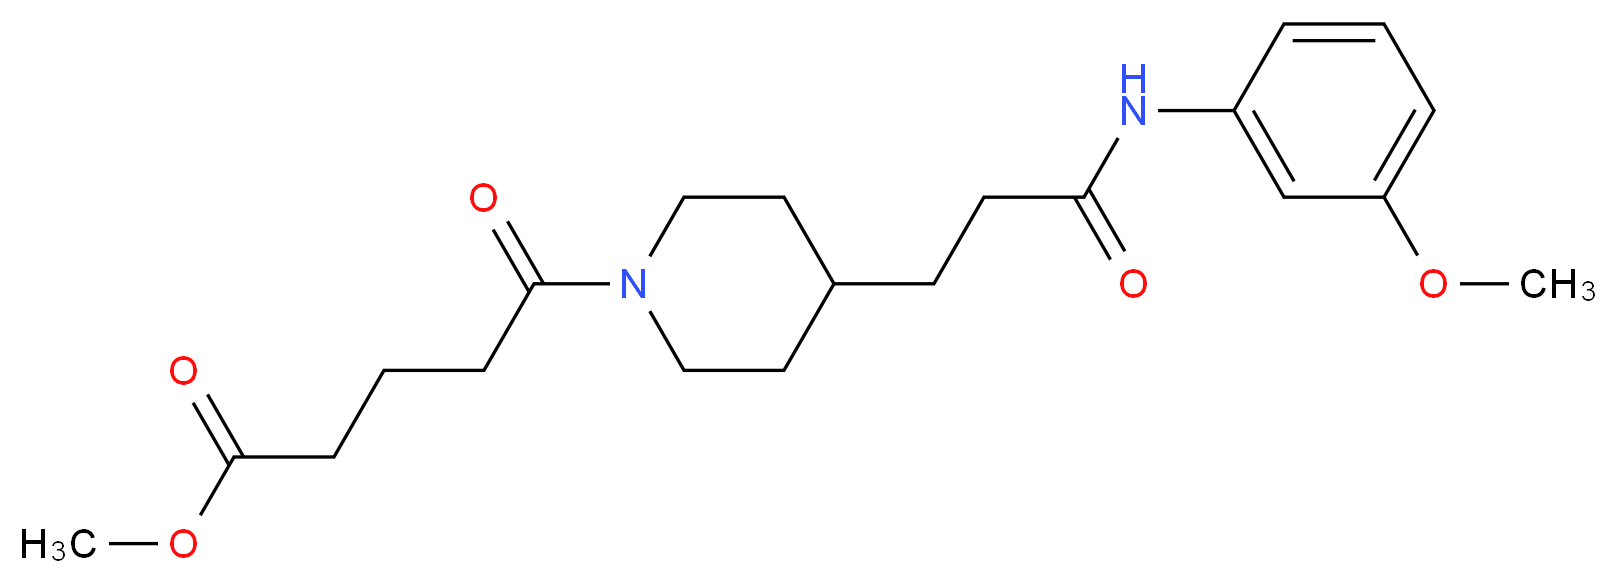 methyl 5-(4-{3-[(3-methoxyphenyl)amino]-3-oxopropyl}-1-piperidinyl)-5-oxopentanoate_Molecular_structure_CAS_)